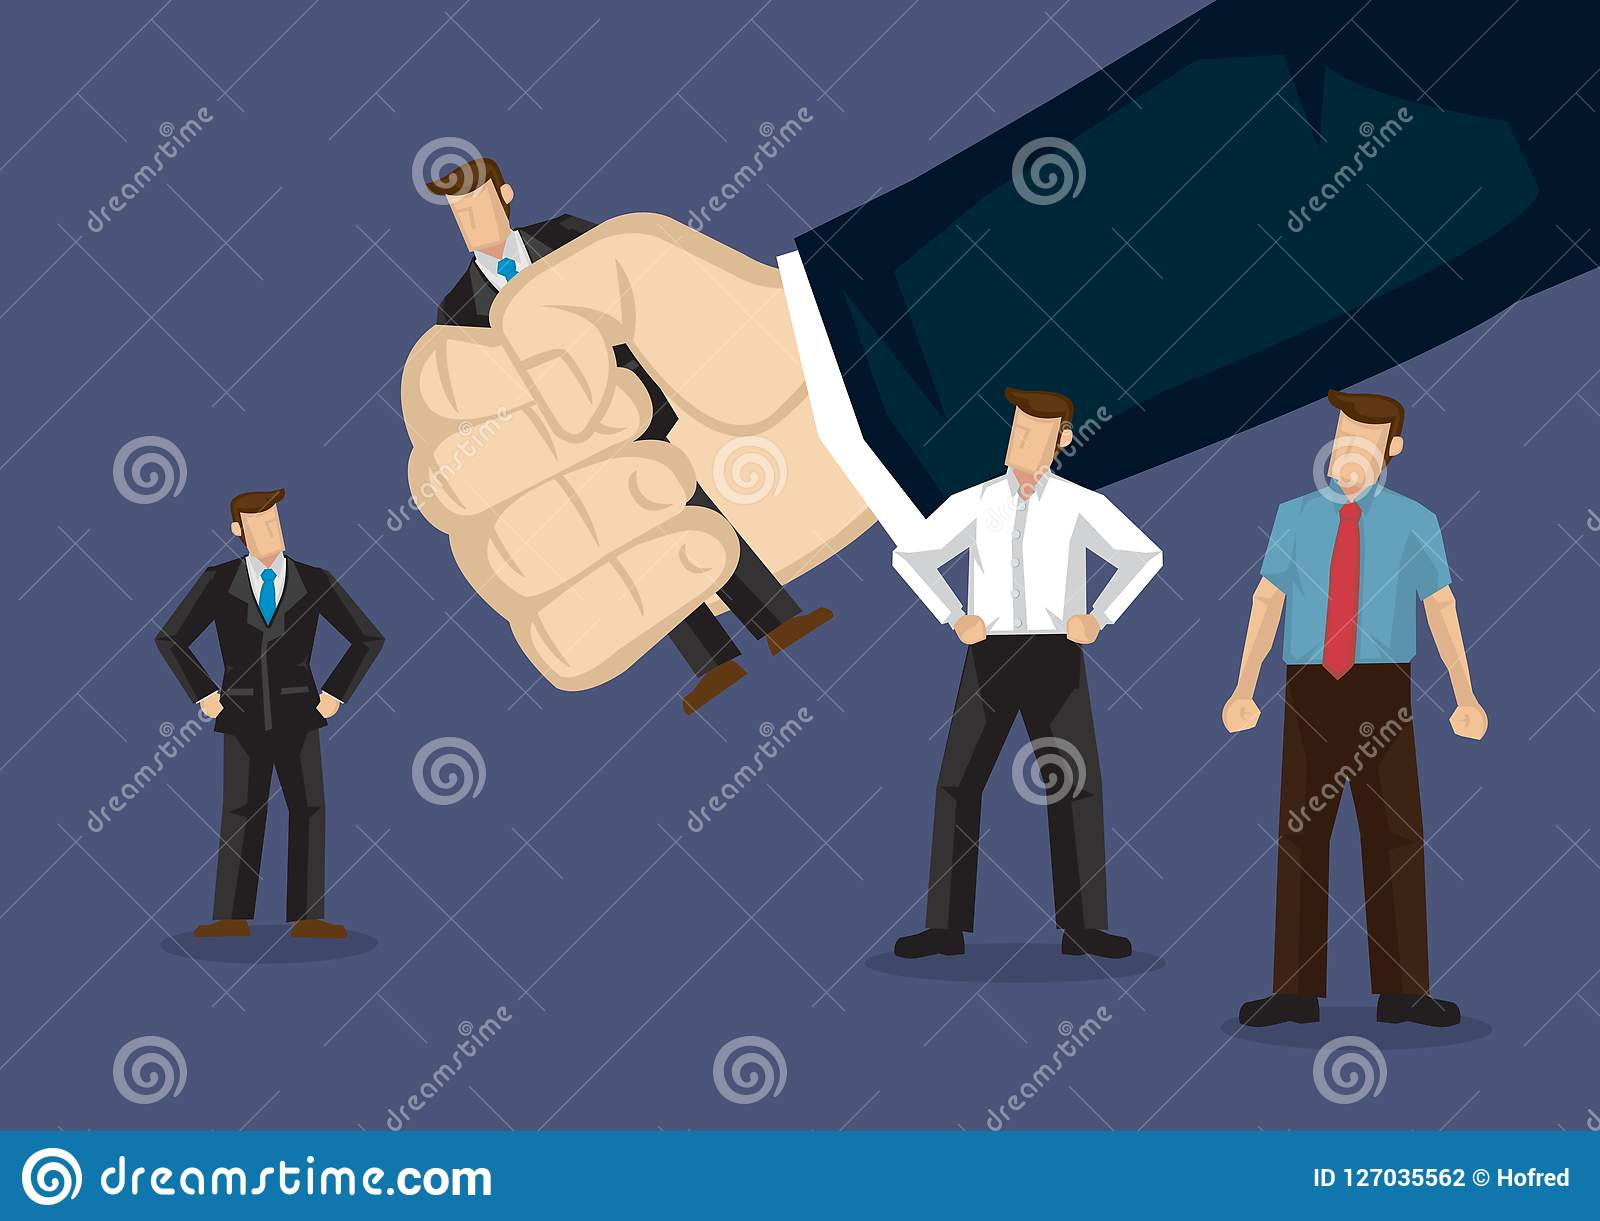 Handpicked Business Professional Cartoon Vector Illustration